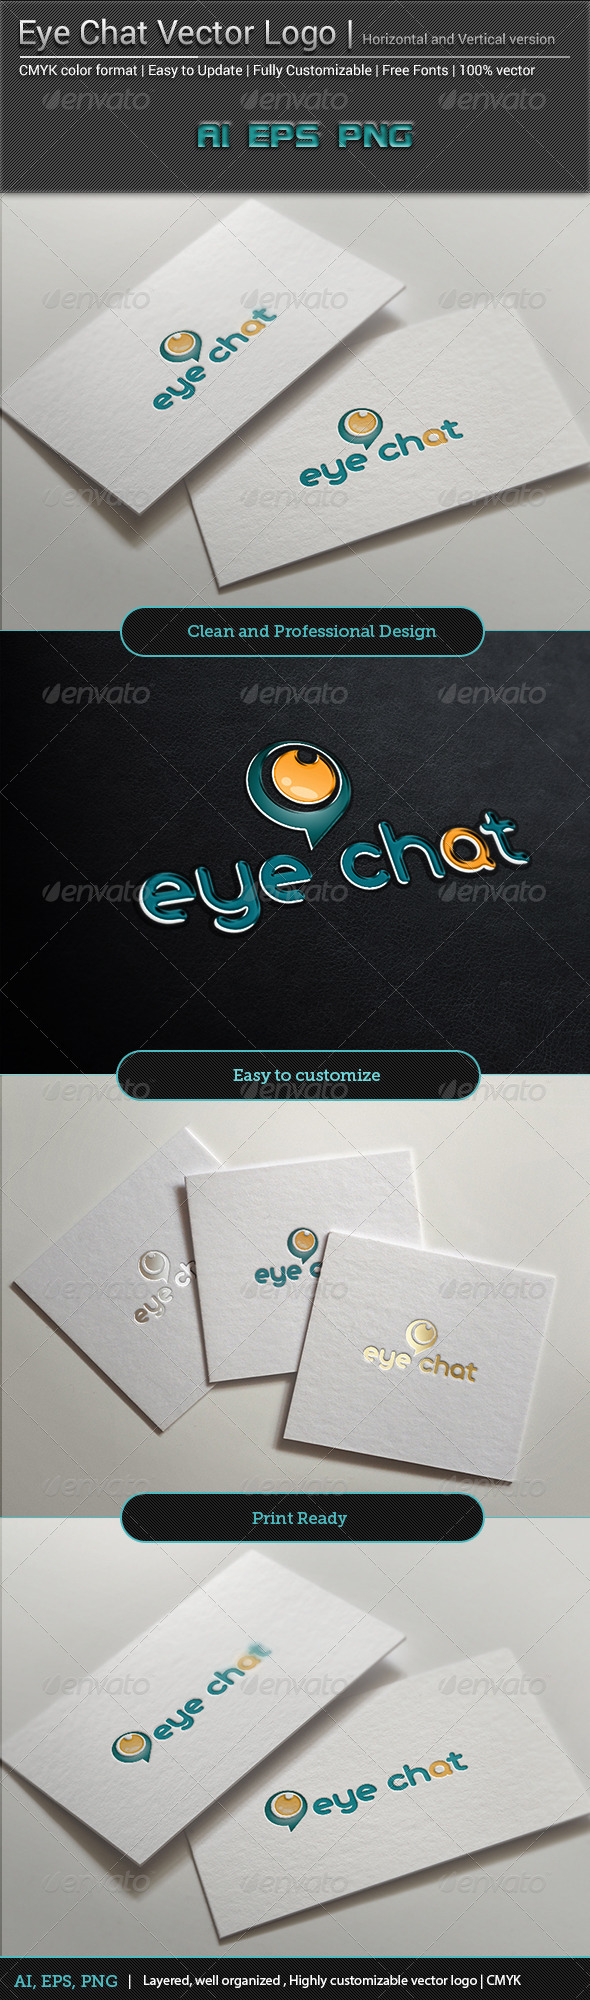 GraphicRiver Eye Chat Vector Logo 5875696